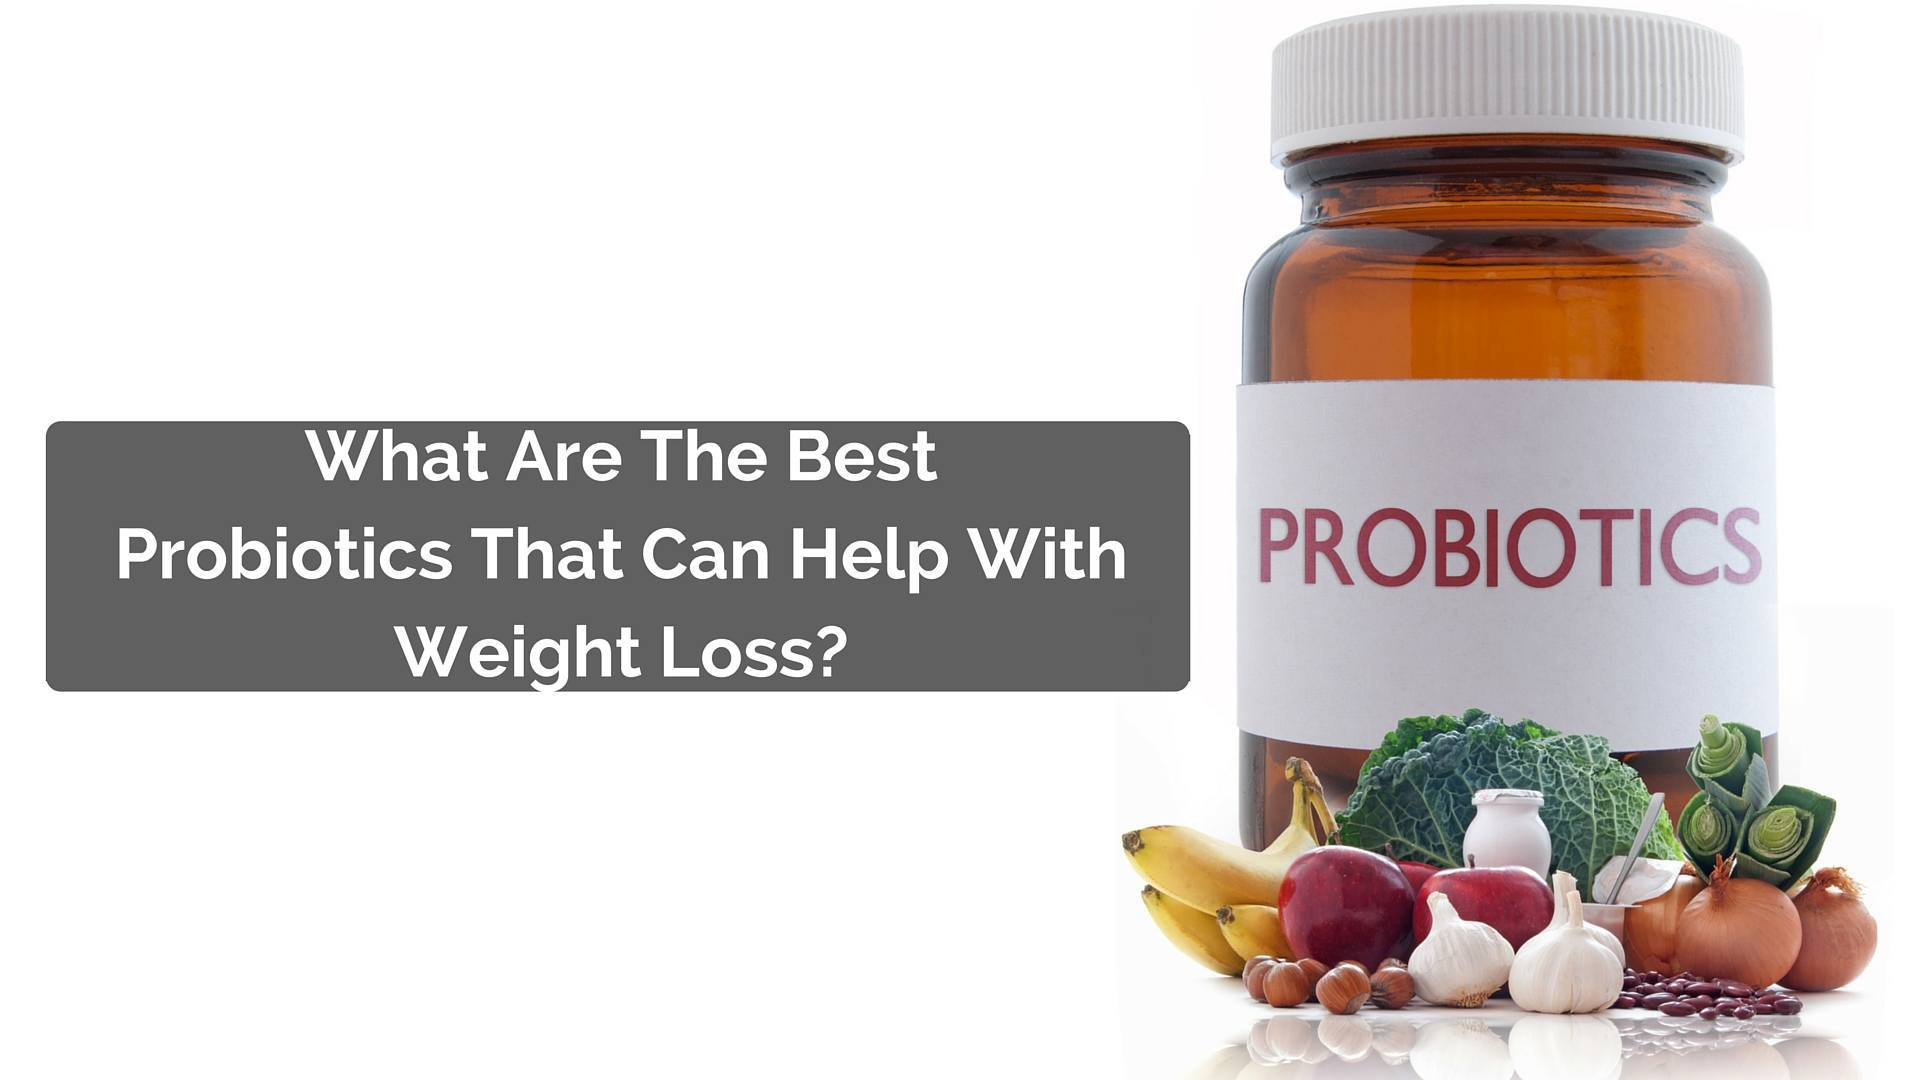 Whats The Best Probiotic That Can Aid Your Weight Loss? Read on to find out.